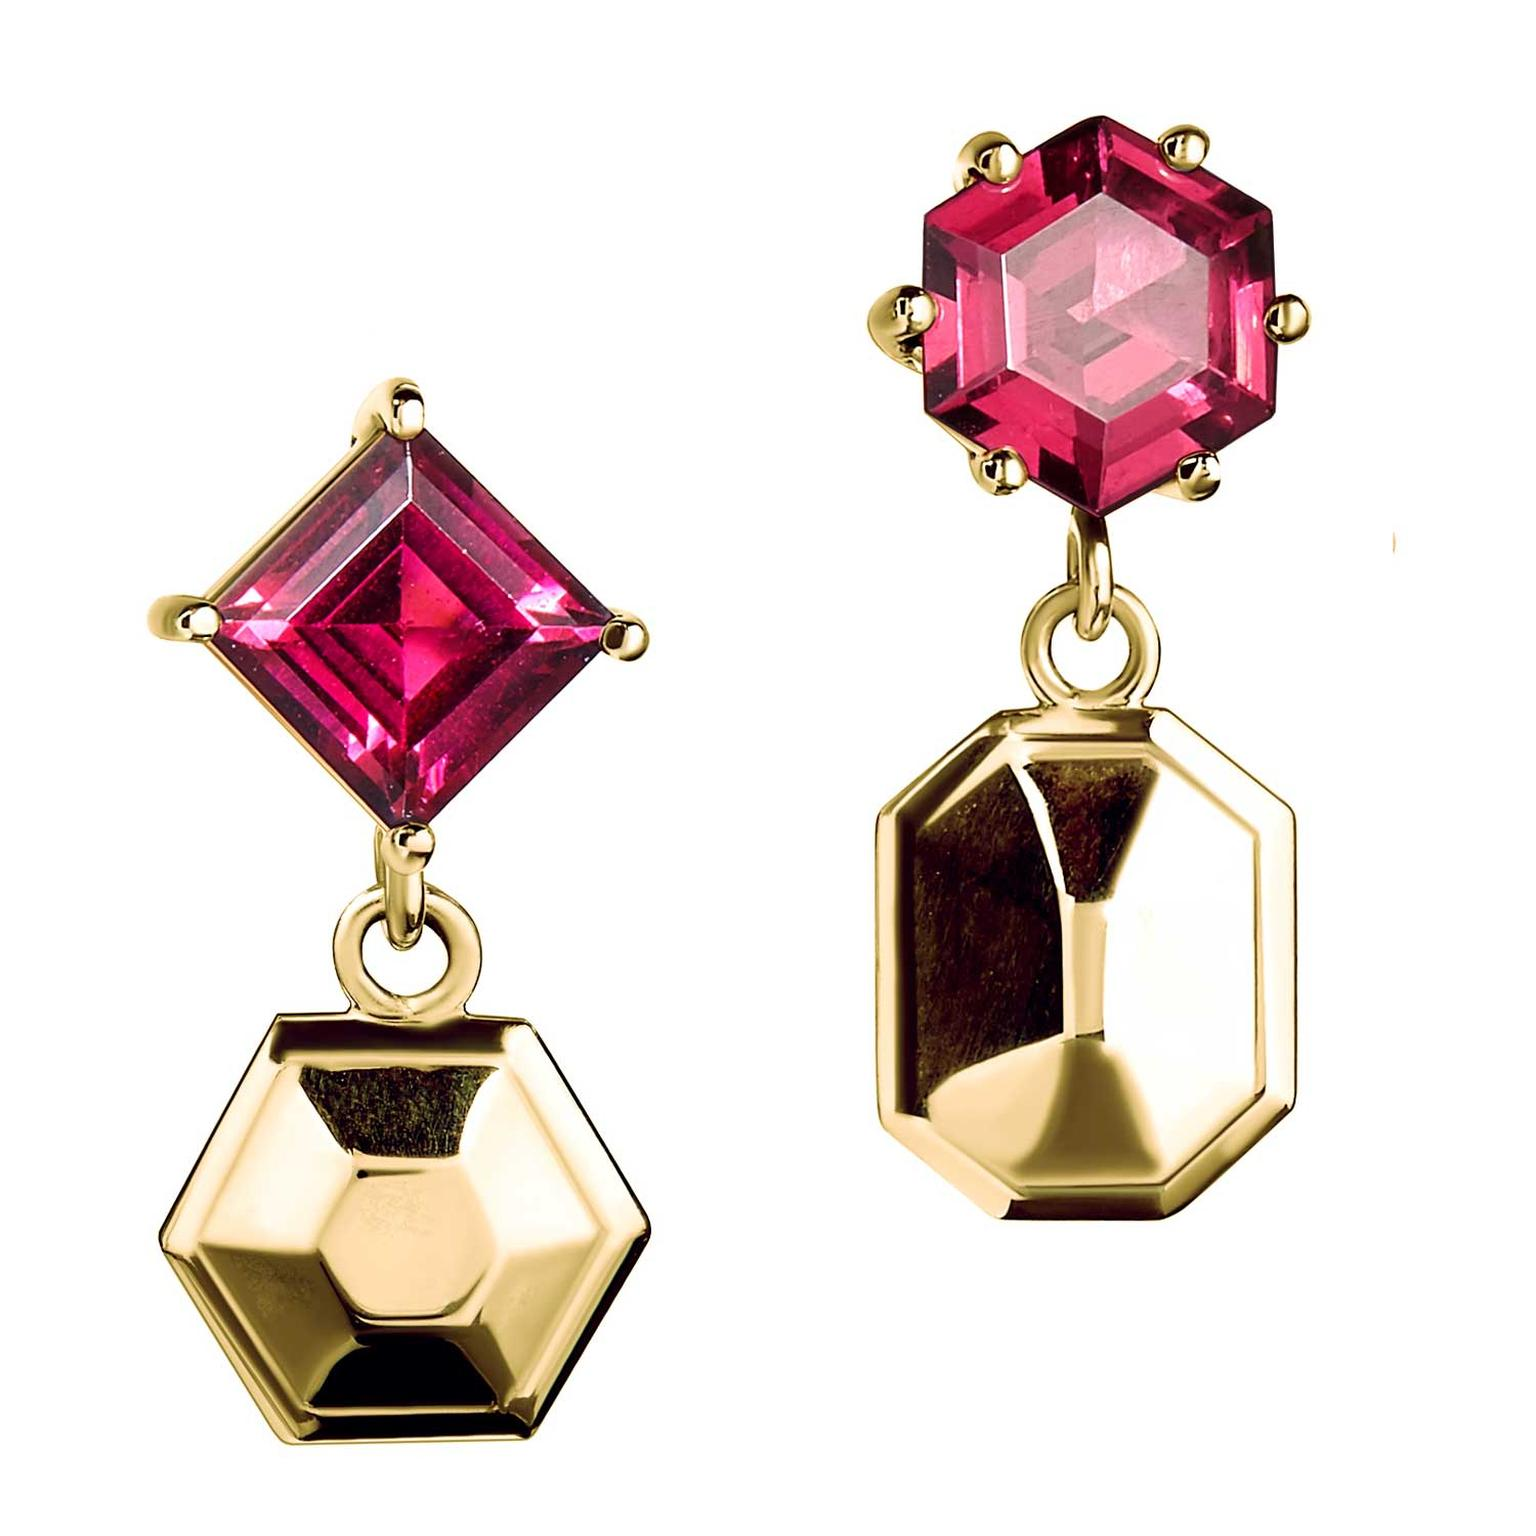 Tessa Packard Puzzle rhodolite garnet earrings